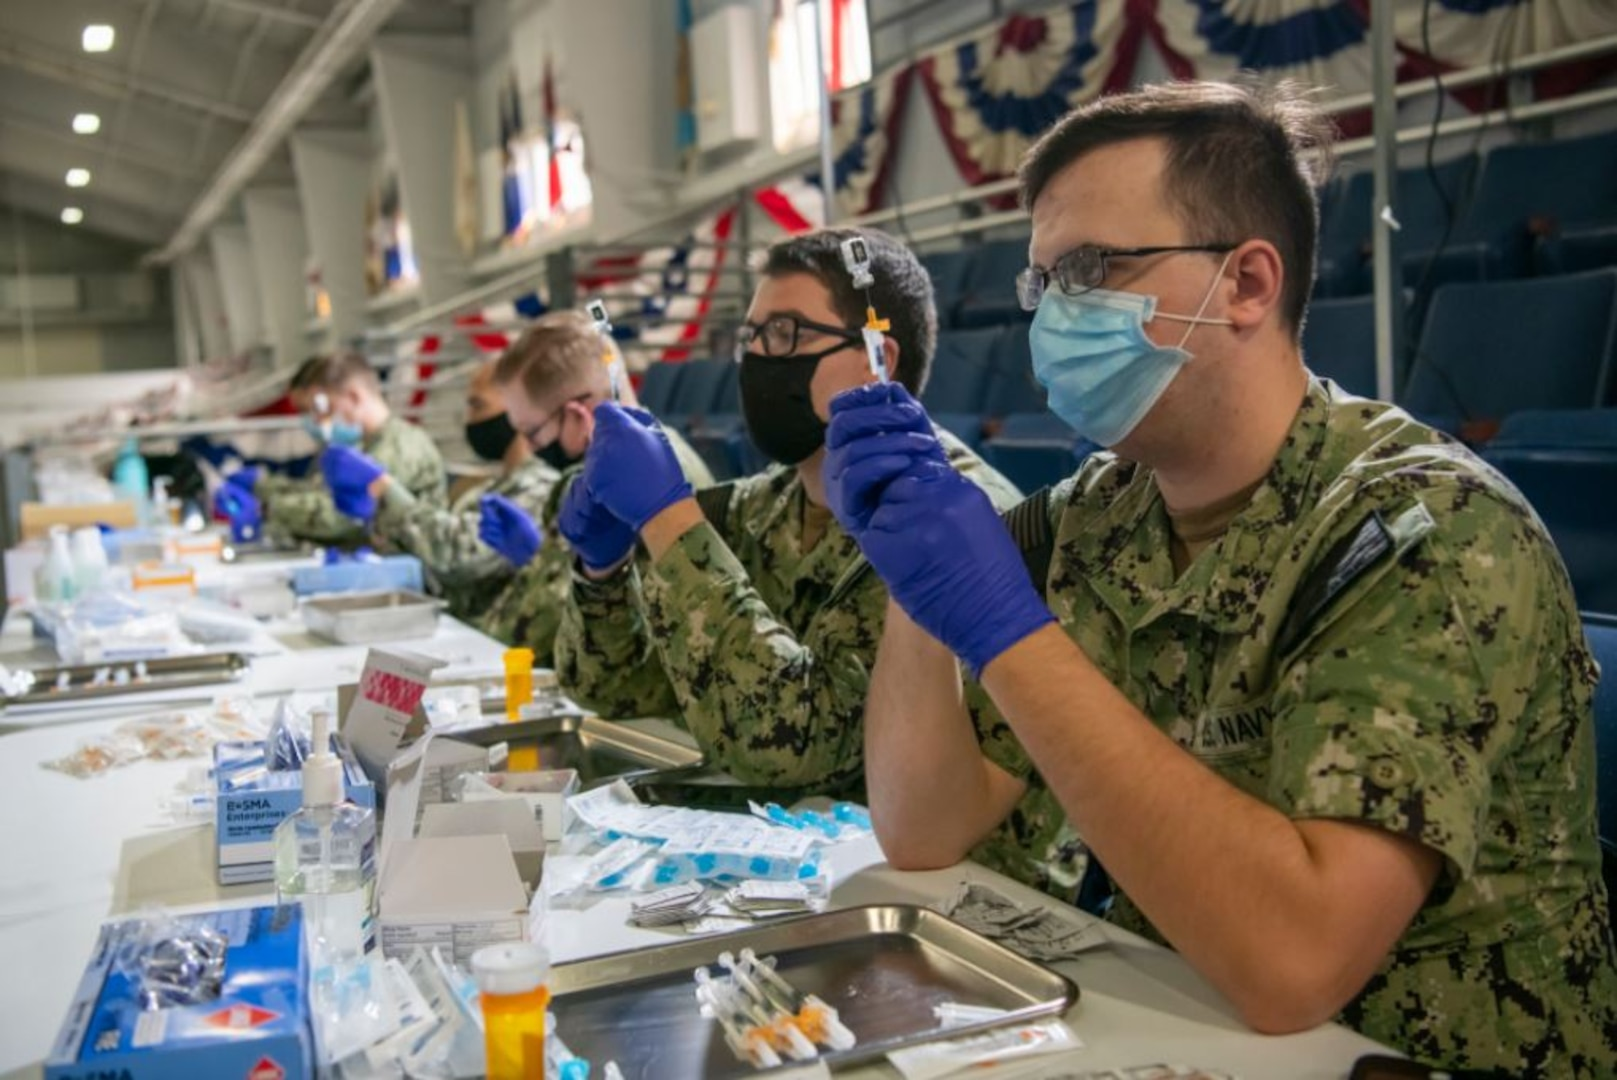 FALLS CHURCH, Va. - All Active Duty and Ready Reserve Sailors are now required to be fully vaccinated against COVID-19.